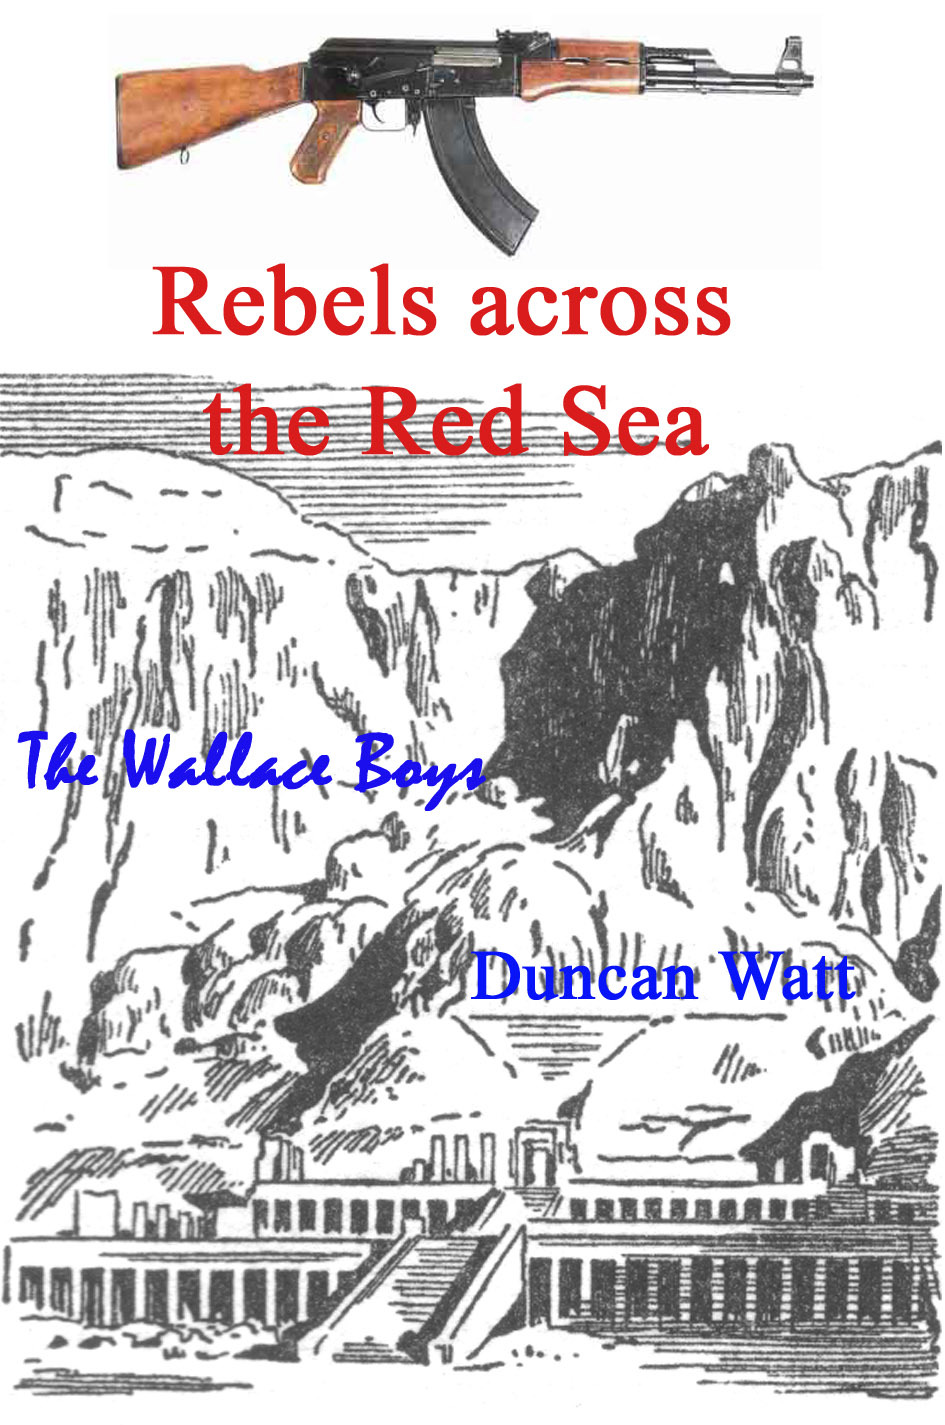 Rebels across the Red Sea